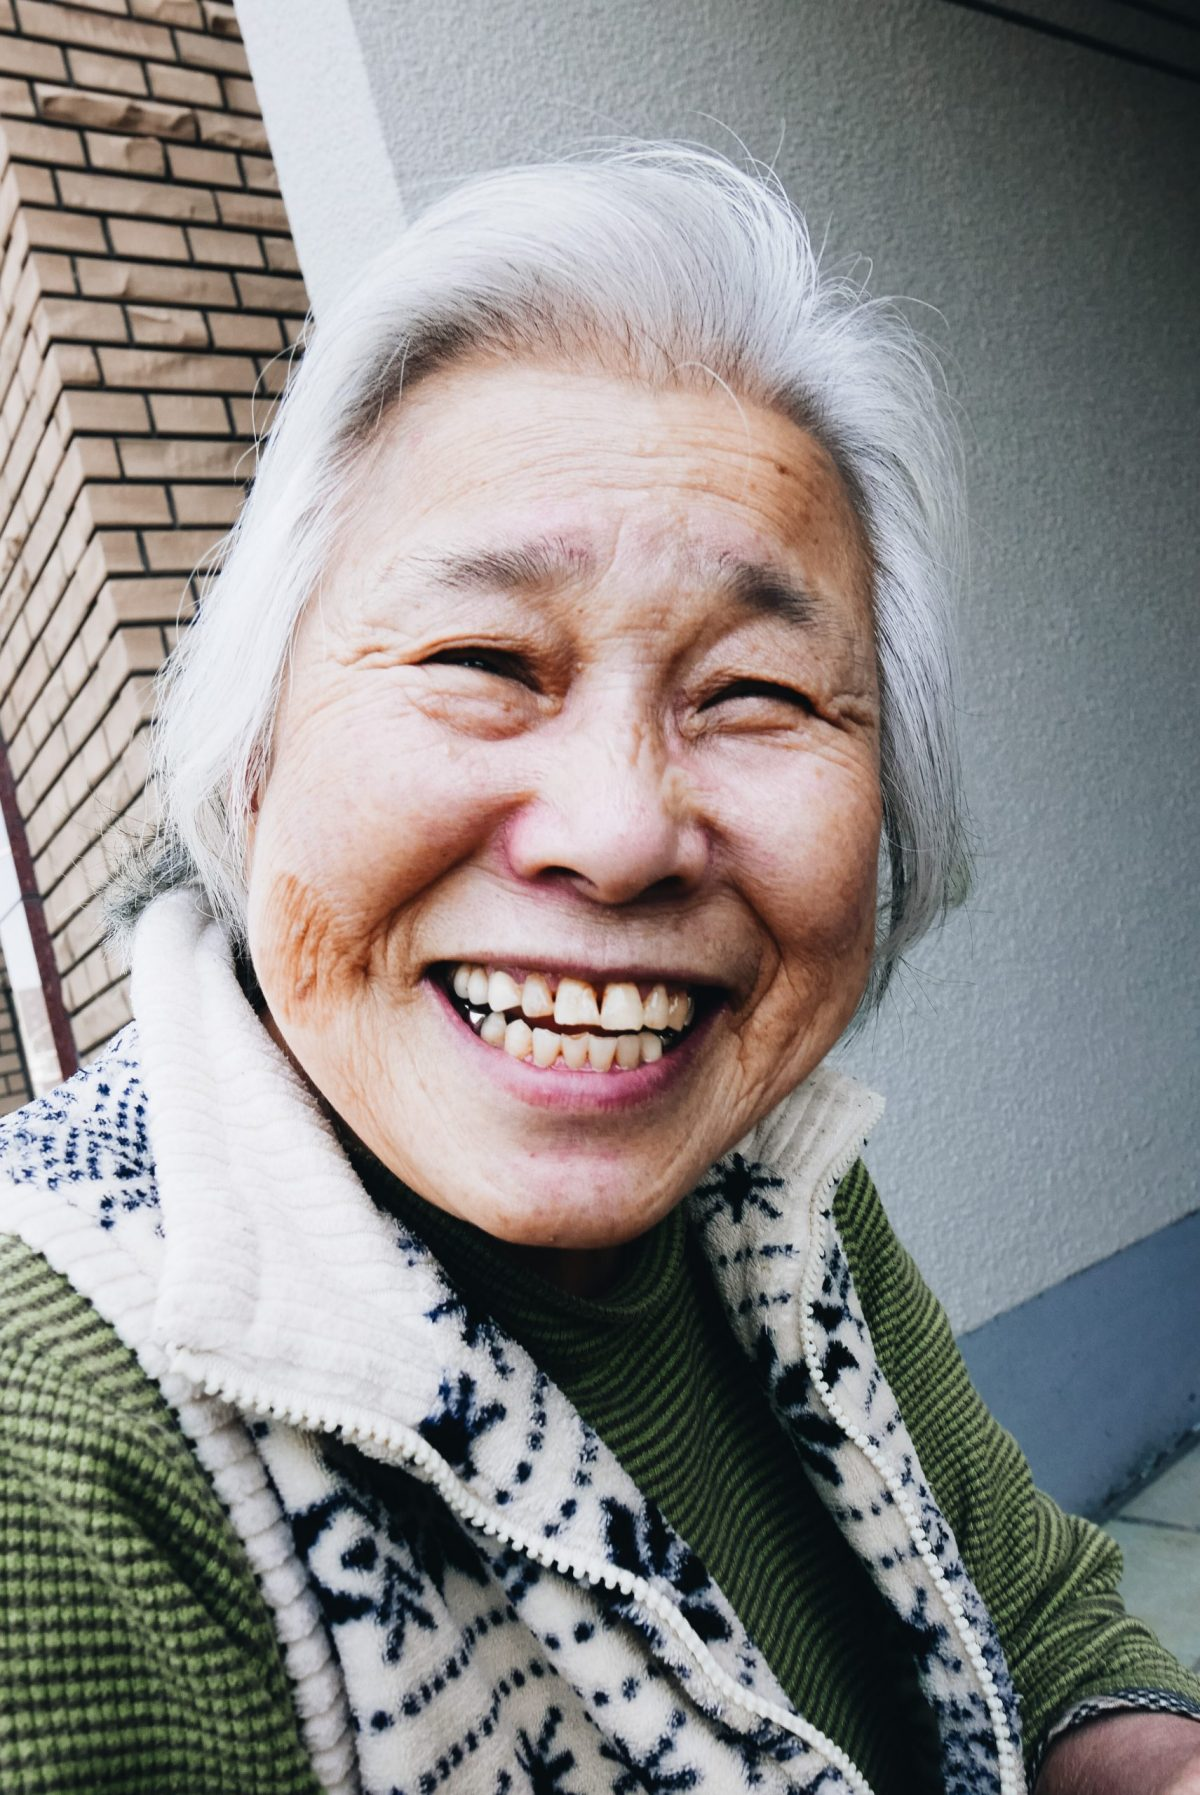 Kyoto older woman, street portrait. 2018. Looking at this photograph puts a huge smile on my face!